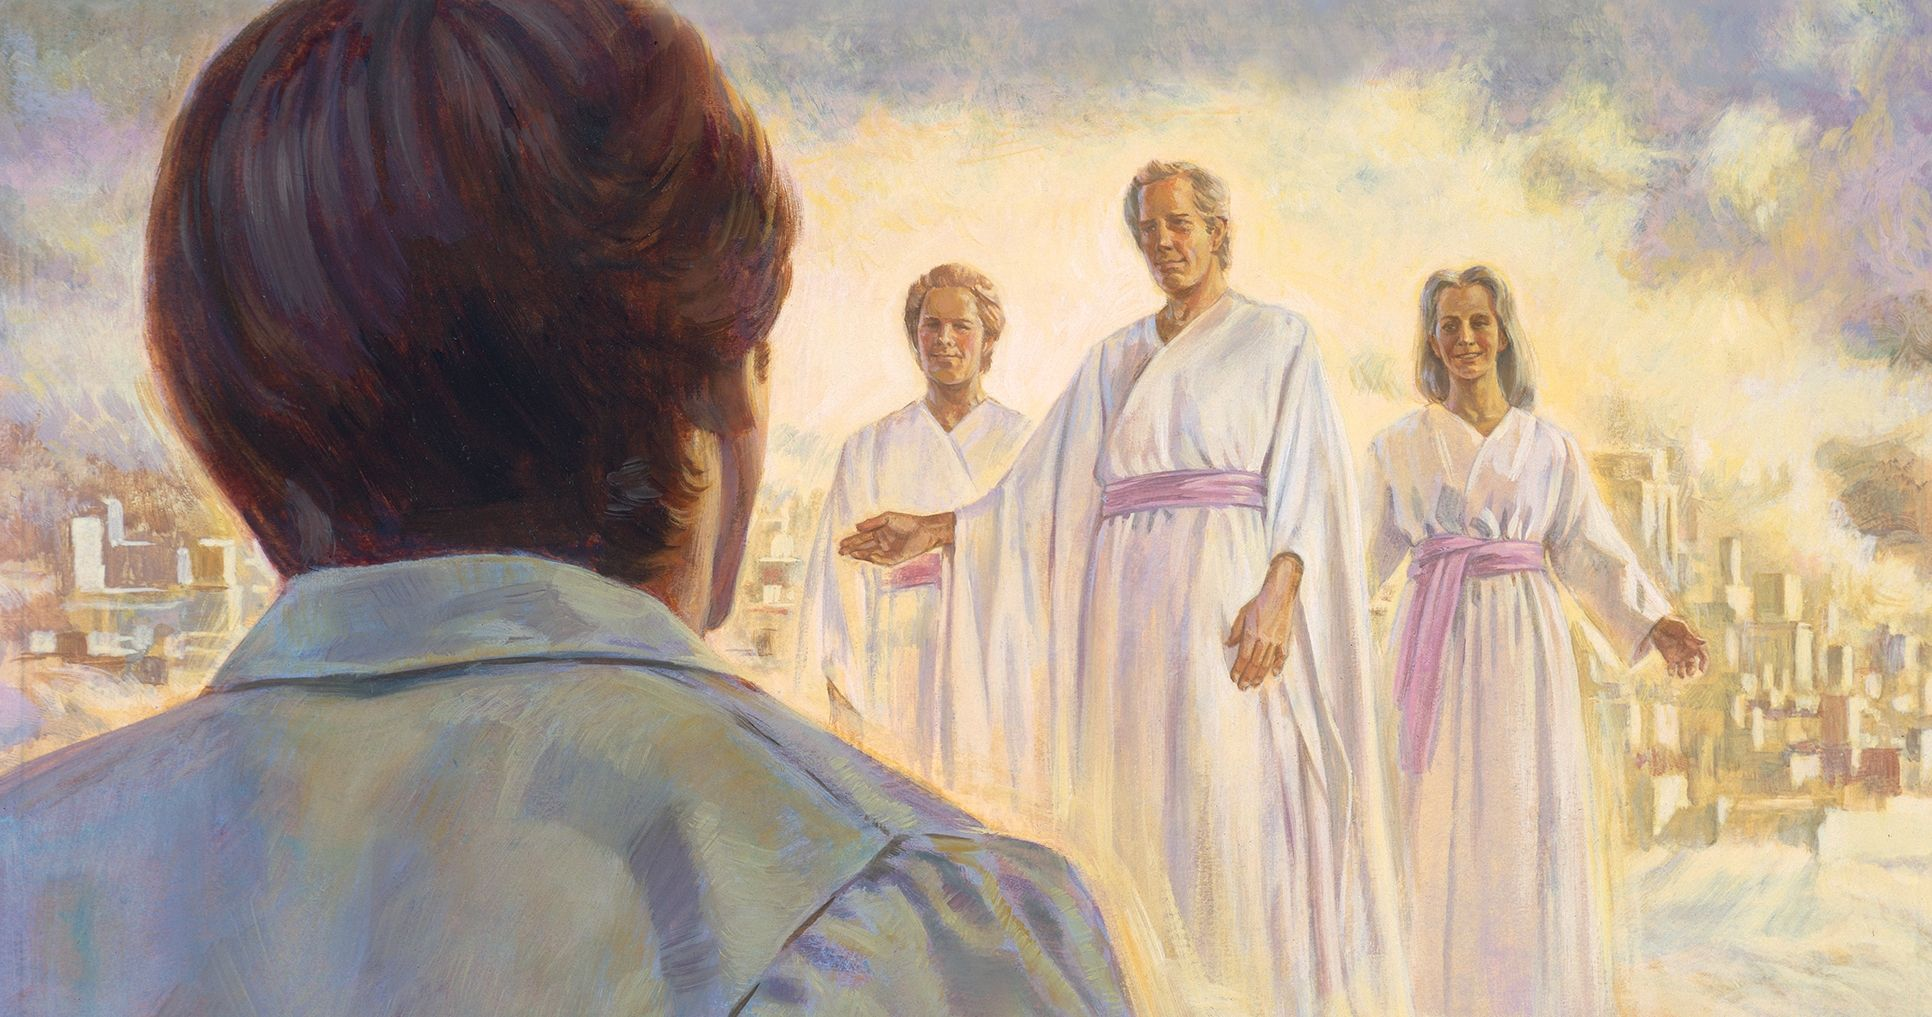 Joseph sees his father, mother, and brother in the celestial kingdom. Joseph Smith's Vision of the Celestial Kingdom, by Robert T. Barrett. Image via Church of Jesus Christ.